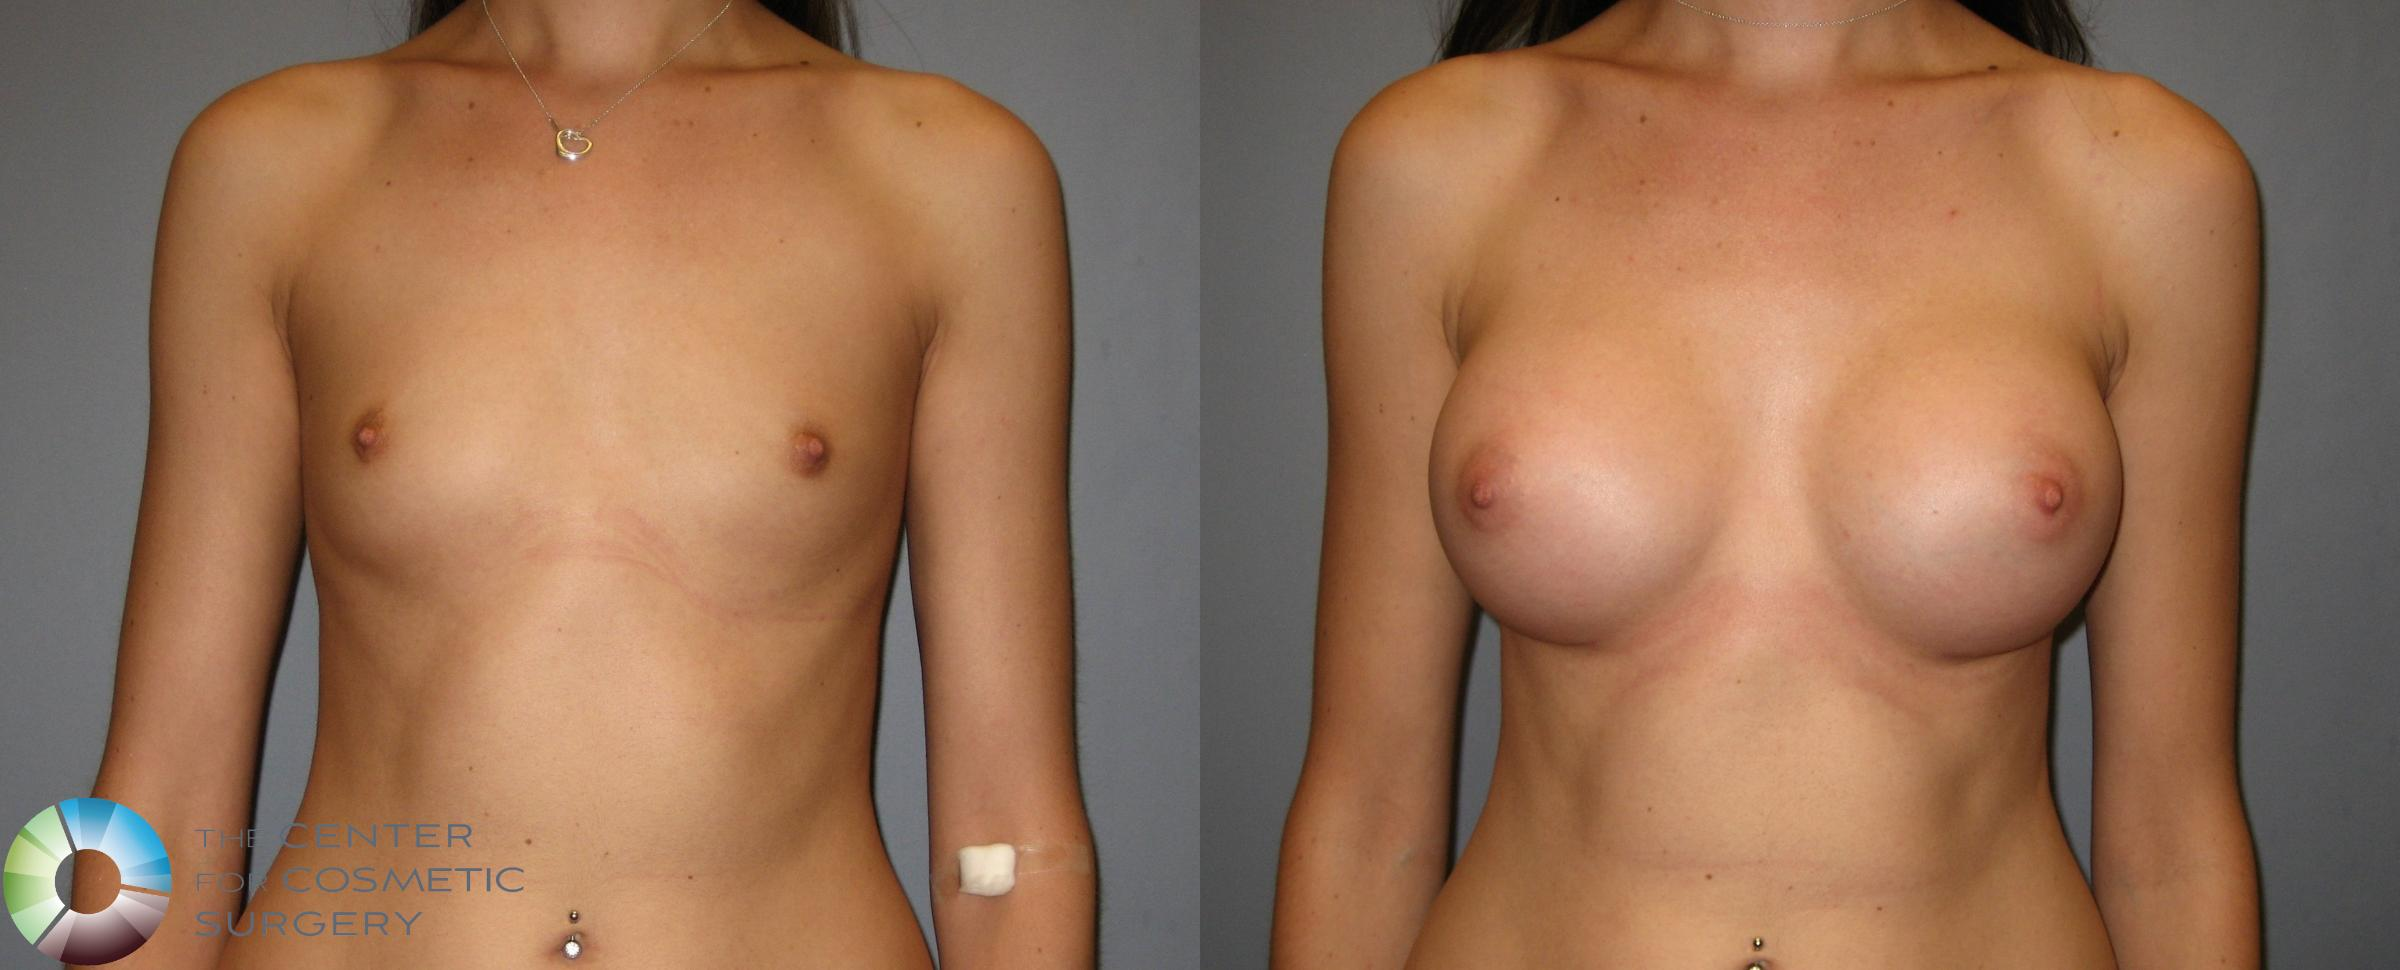 Breast Augmentation Case 247 Before & After View #2 | Golden, CO | The Center for Cosmetic Surgery